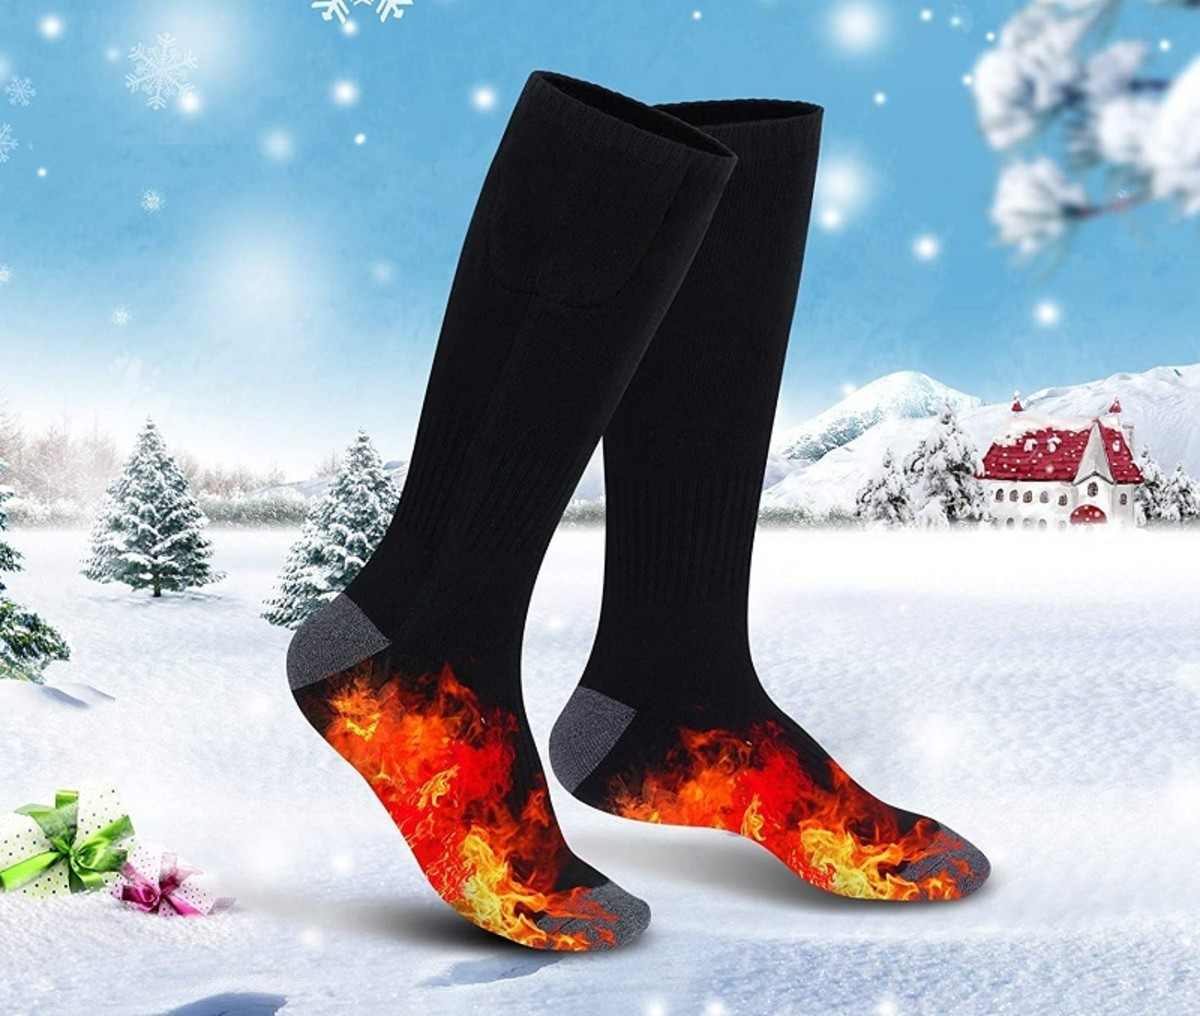 Rechargeable, heated socks make a great Christmas gift.